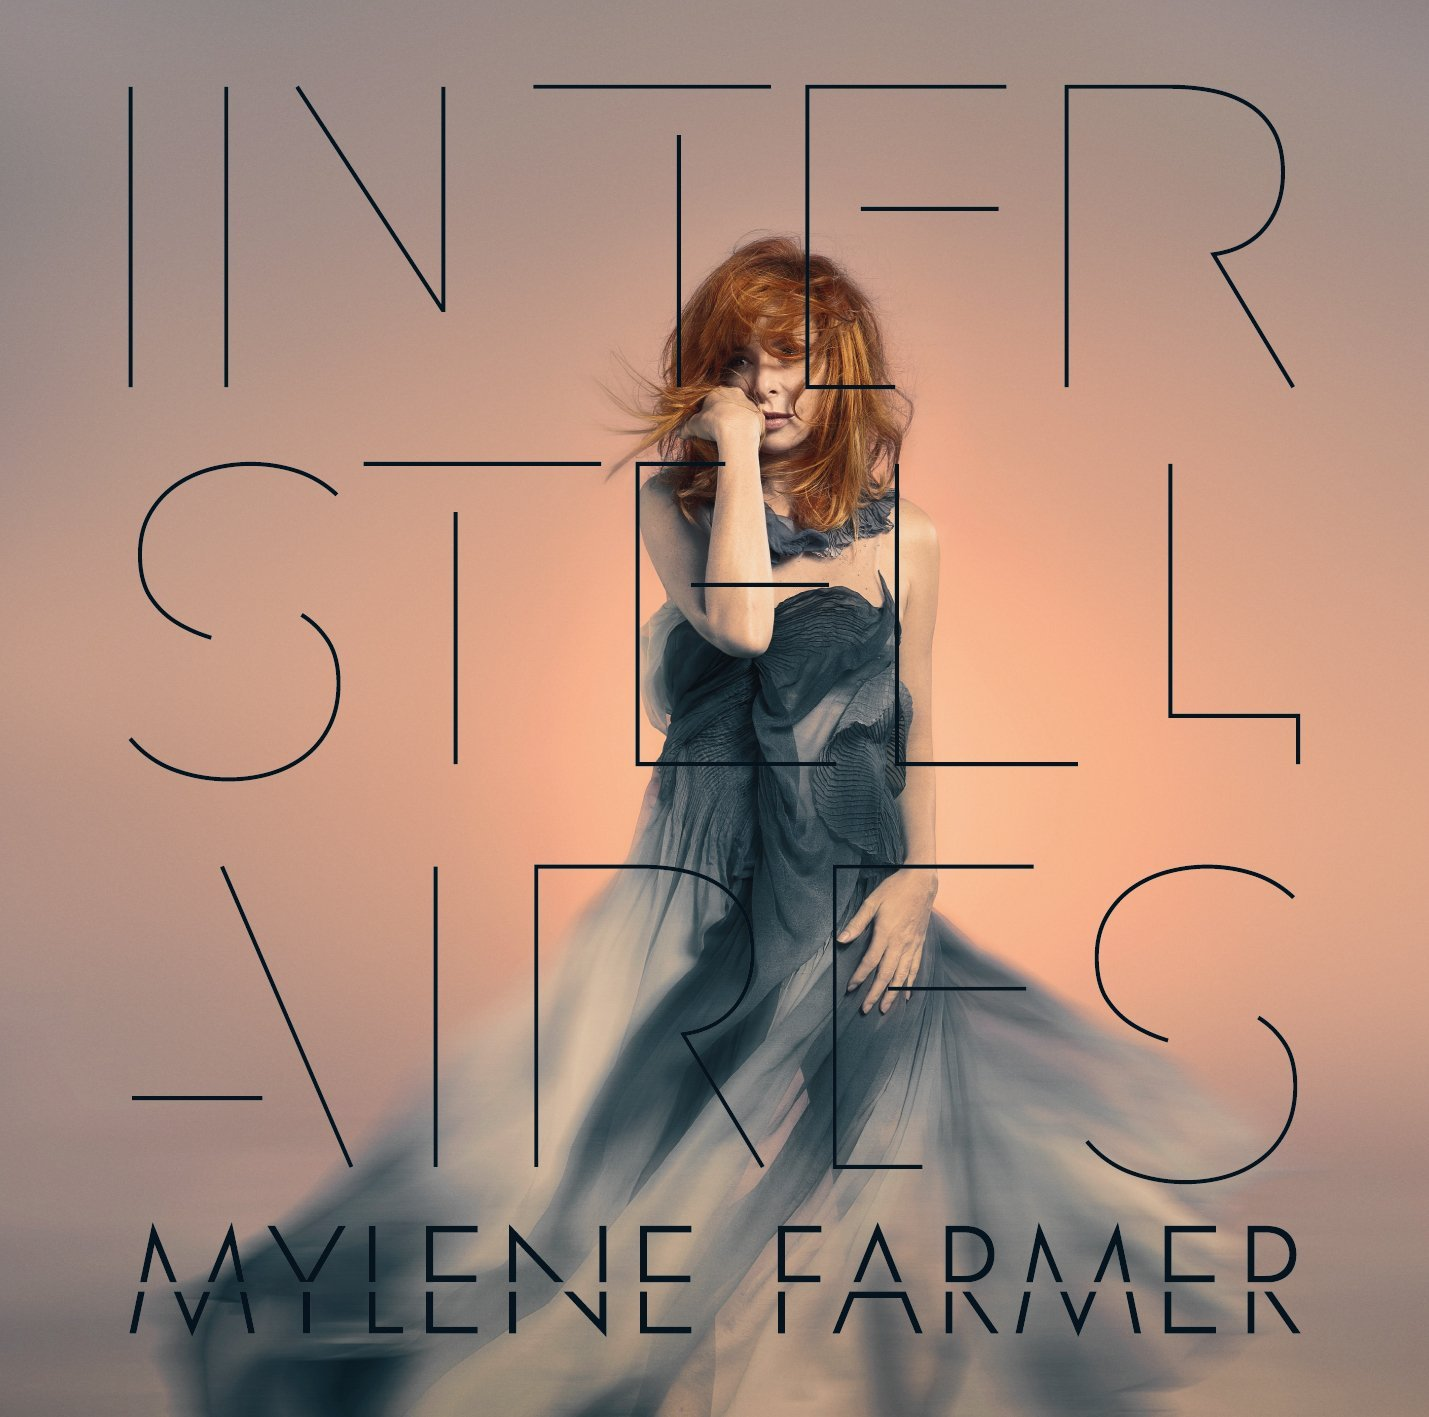 Interstellaires Mylene Farmer Vinyles